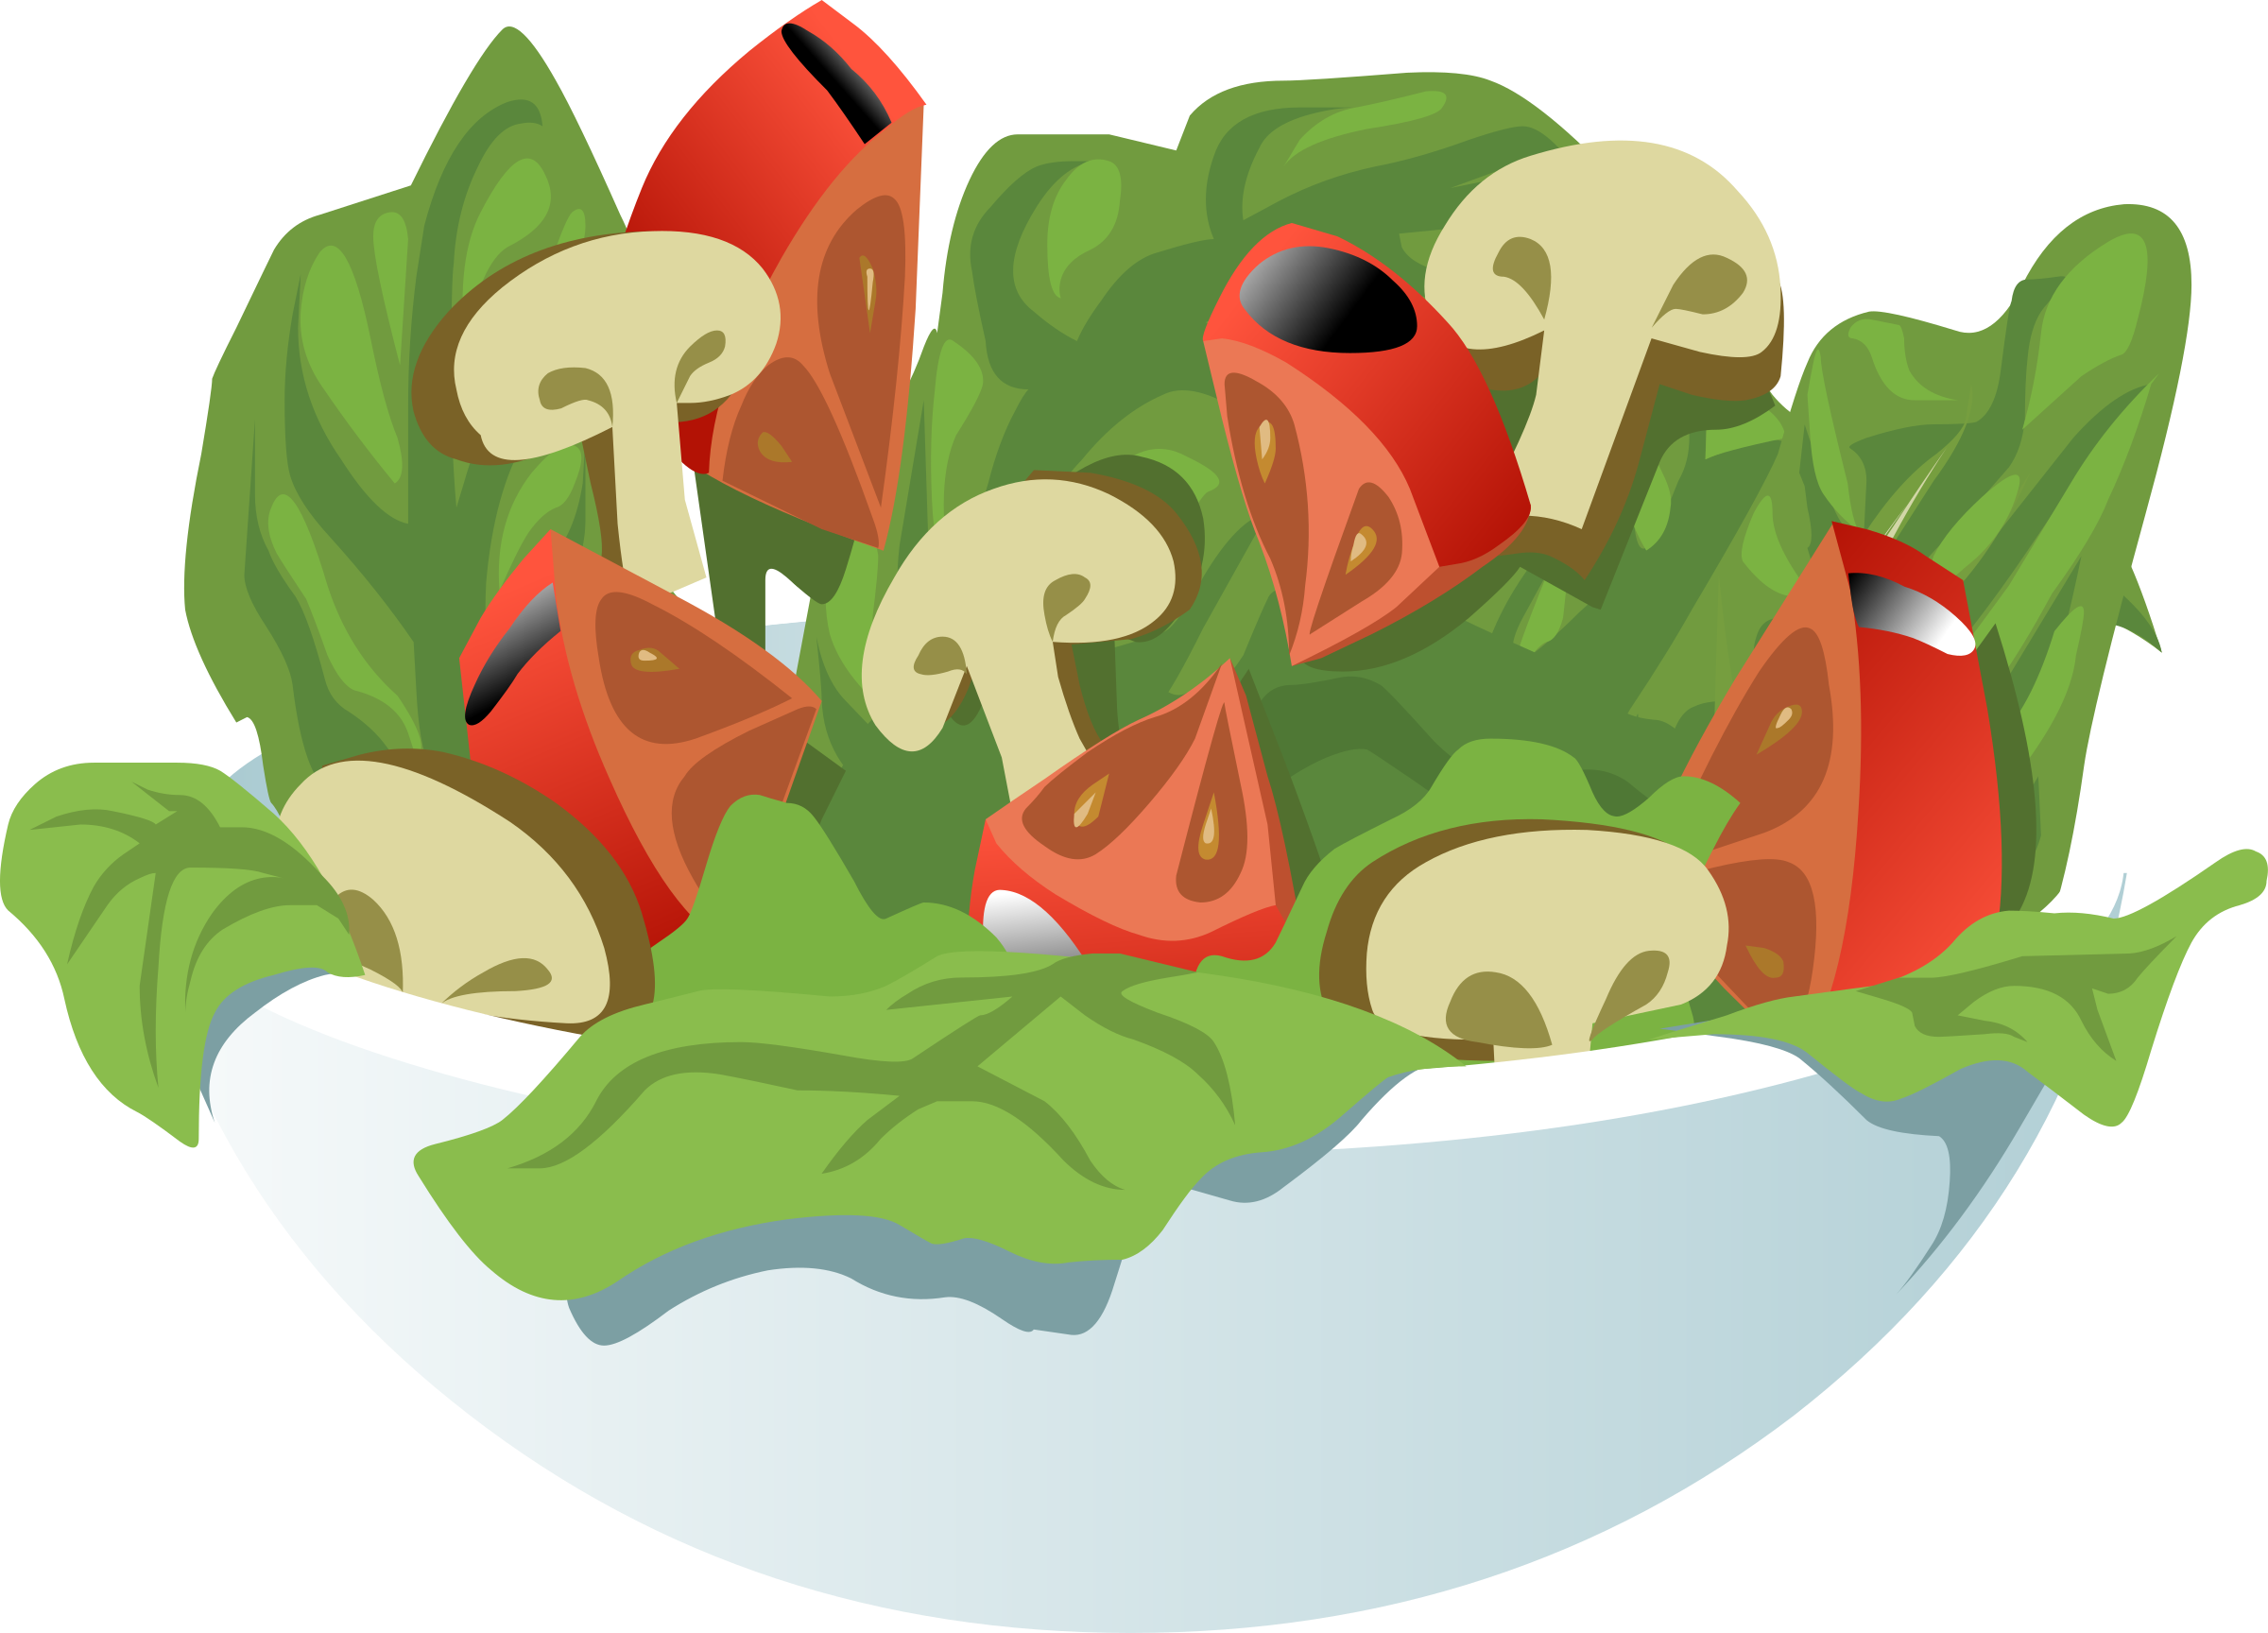 Une salade vocabulaire cuisine. Health clipart healthy cooking